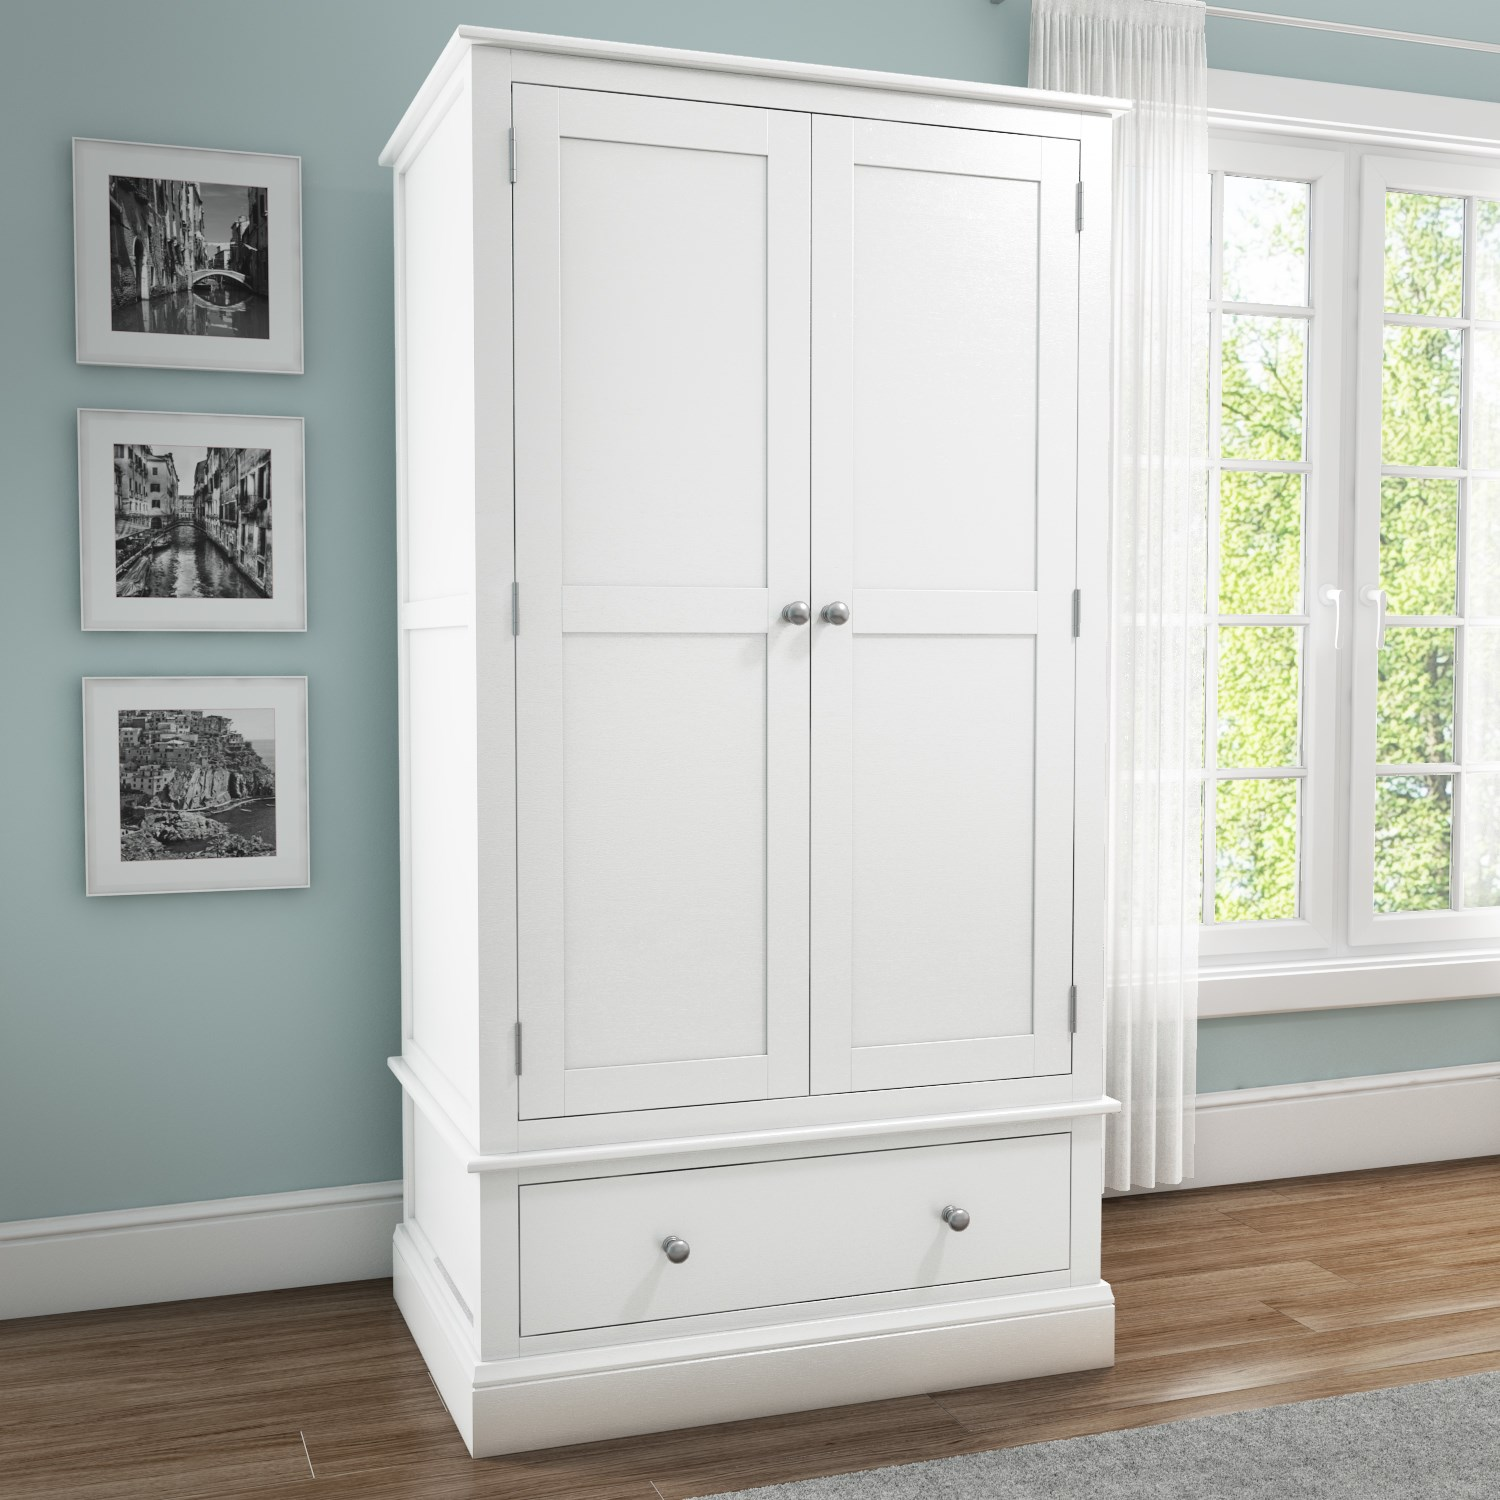 white wardrobes harper white solid wood 2 door 1 drawer wardrobe QYTFGVT